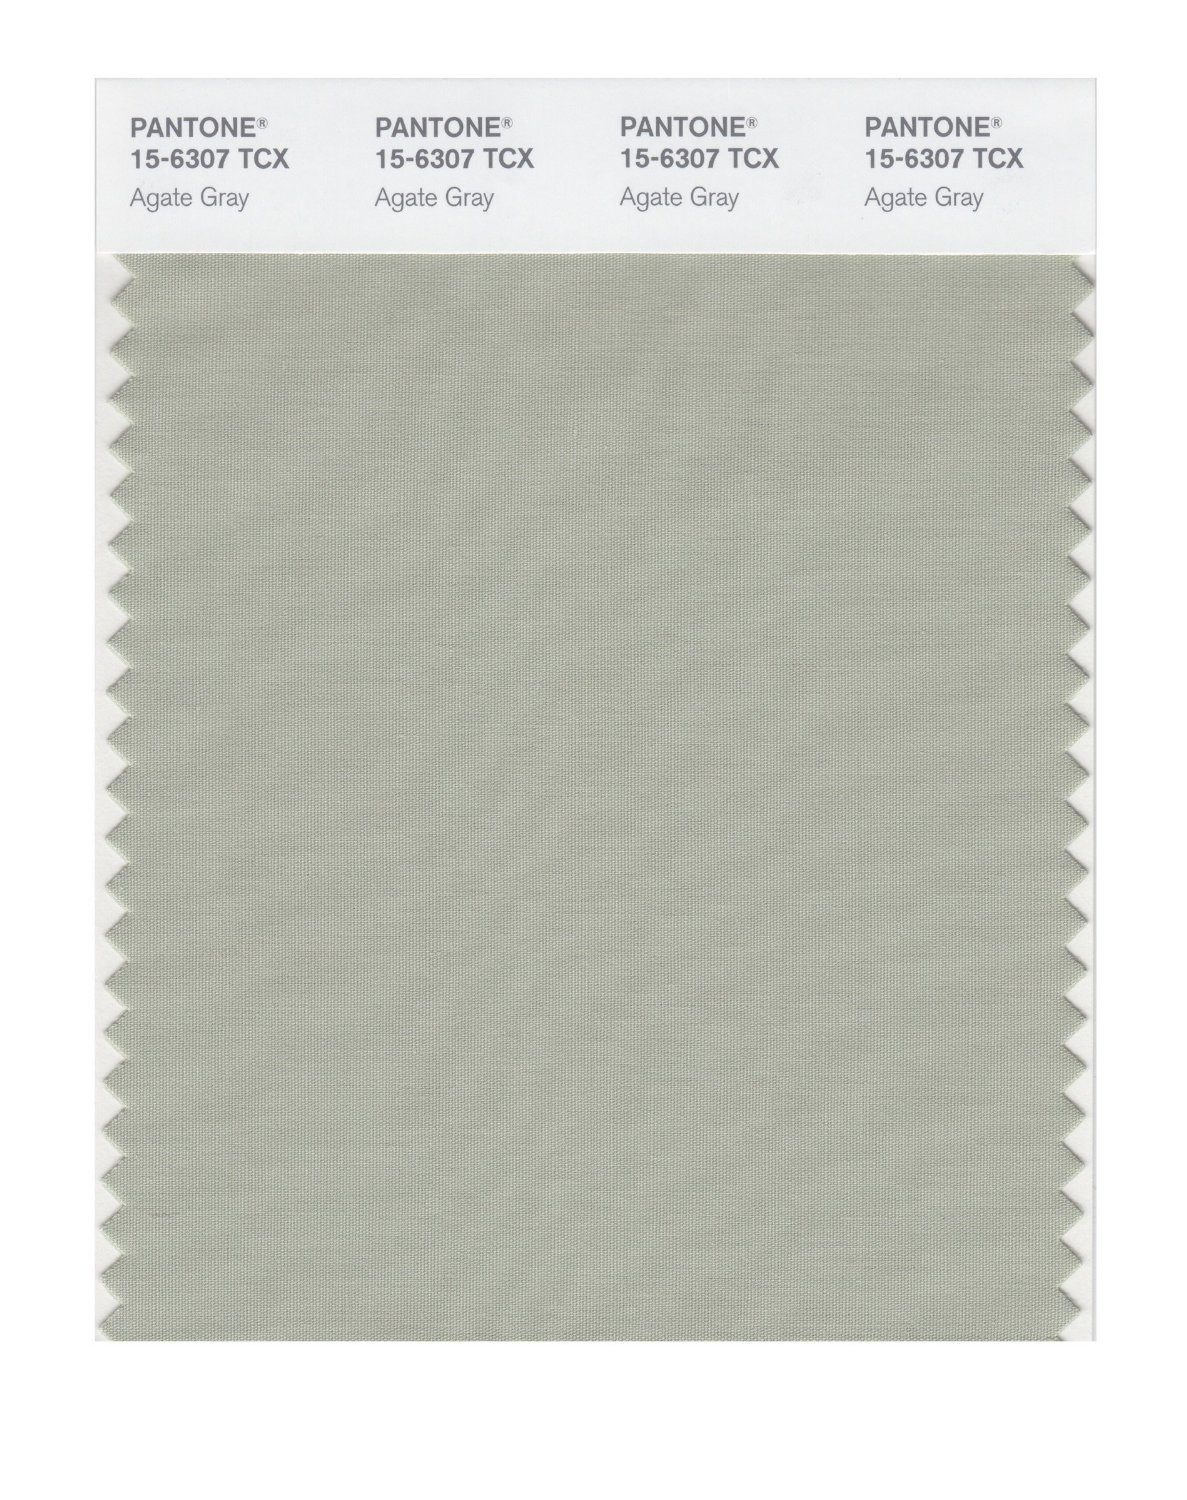 Pantone Smart Swatch 15-6307 Agate Gray